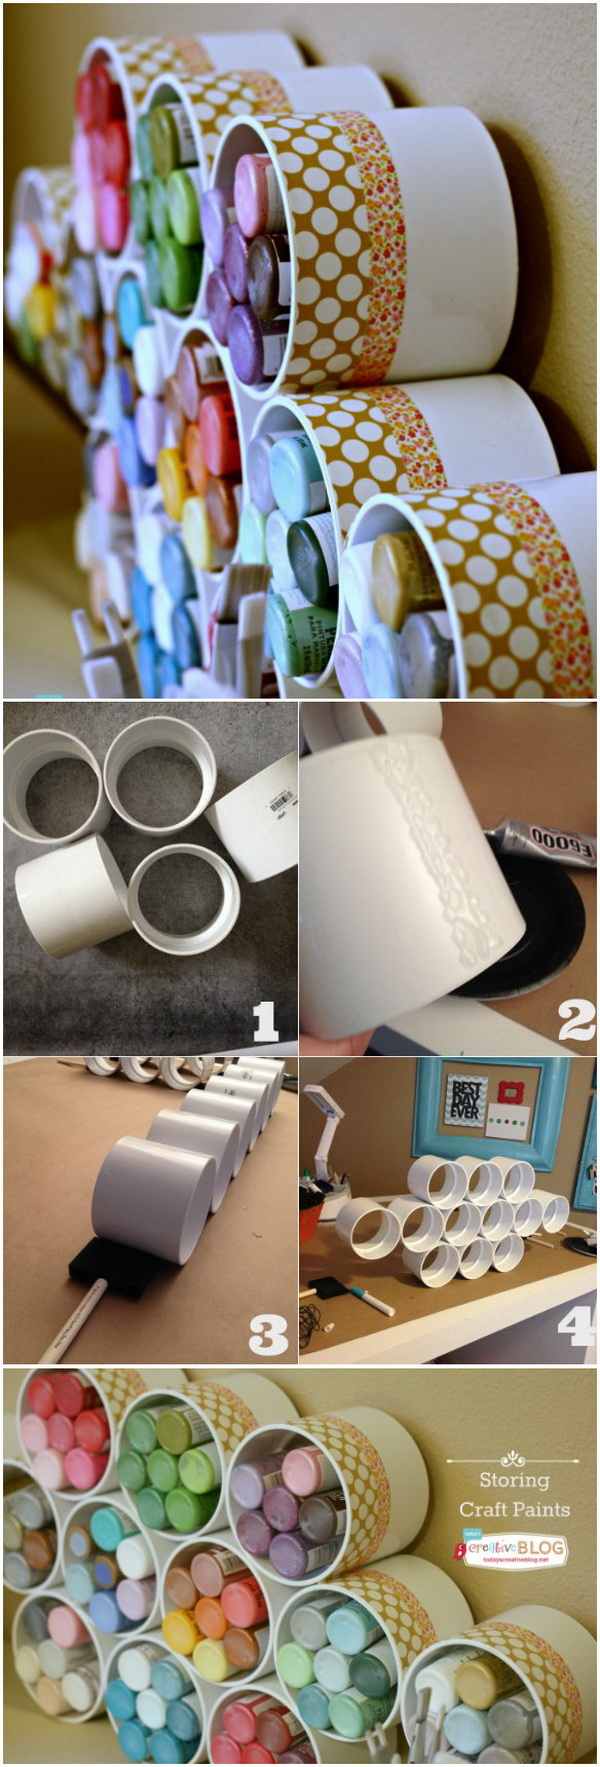 Craft Paints Storage with PVC Pipes. Clever craft paints storage ideas with PVC pipes! & Craft Room Organization u0026 Storage Ideas - For Creative Juice